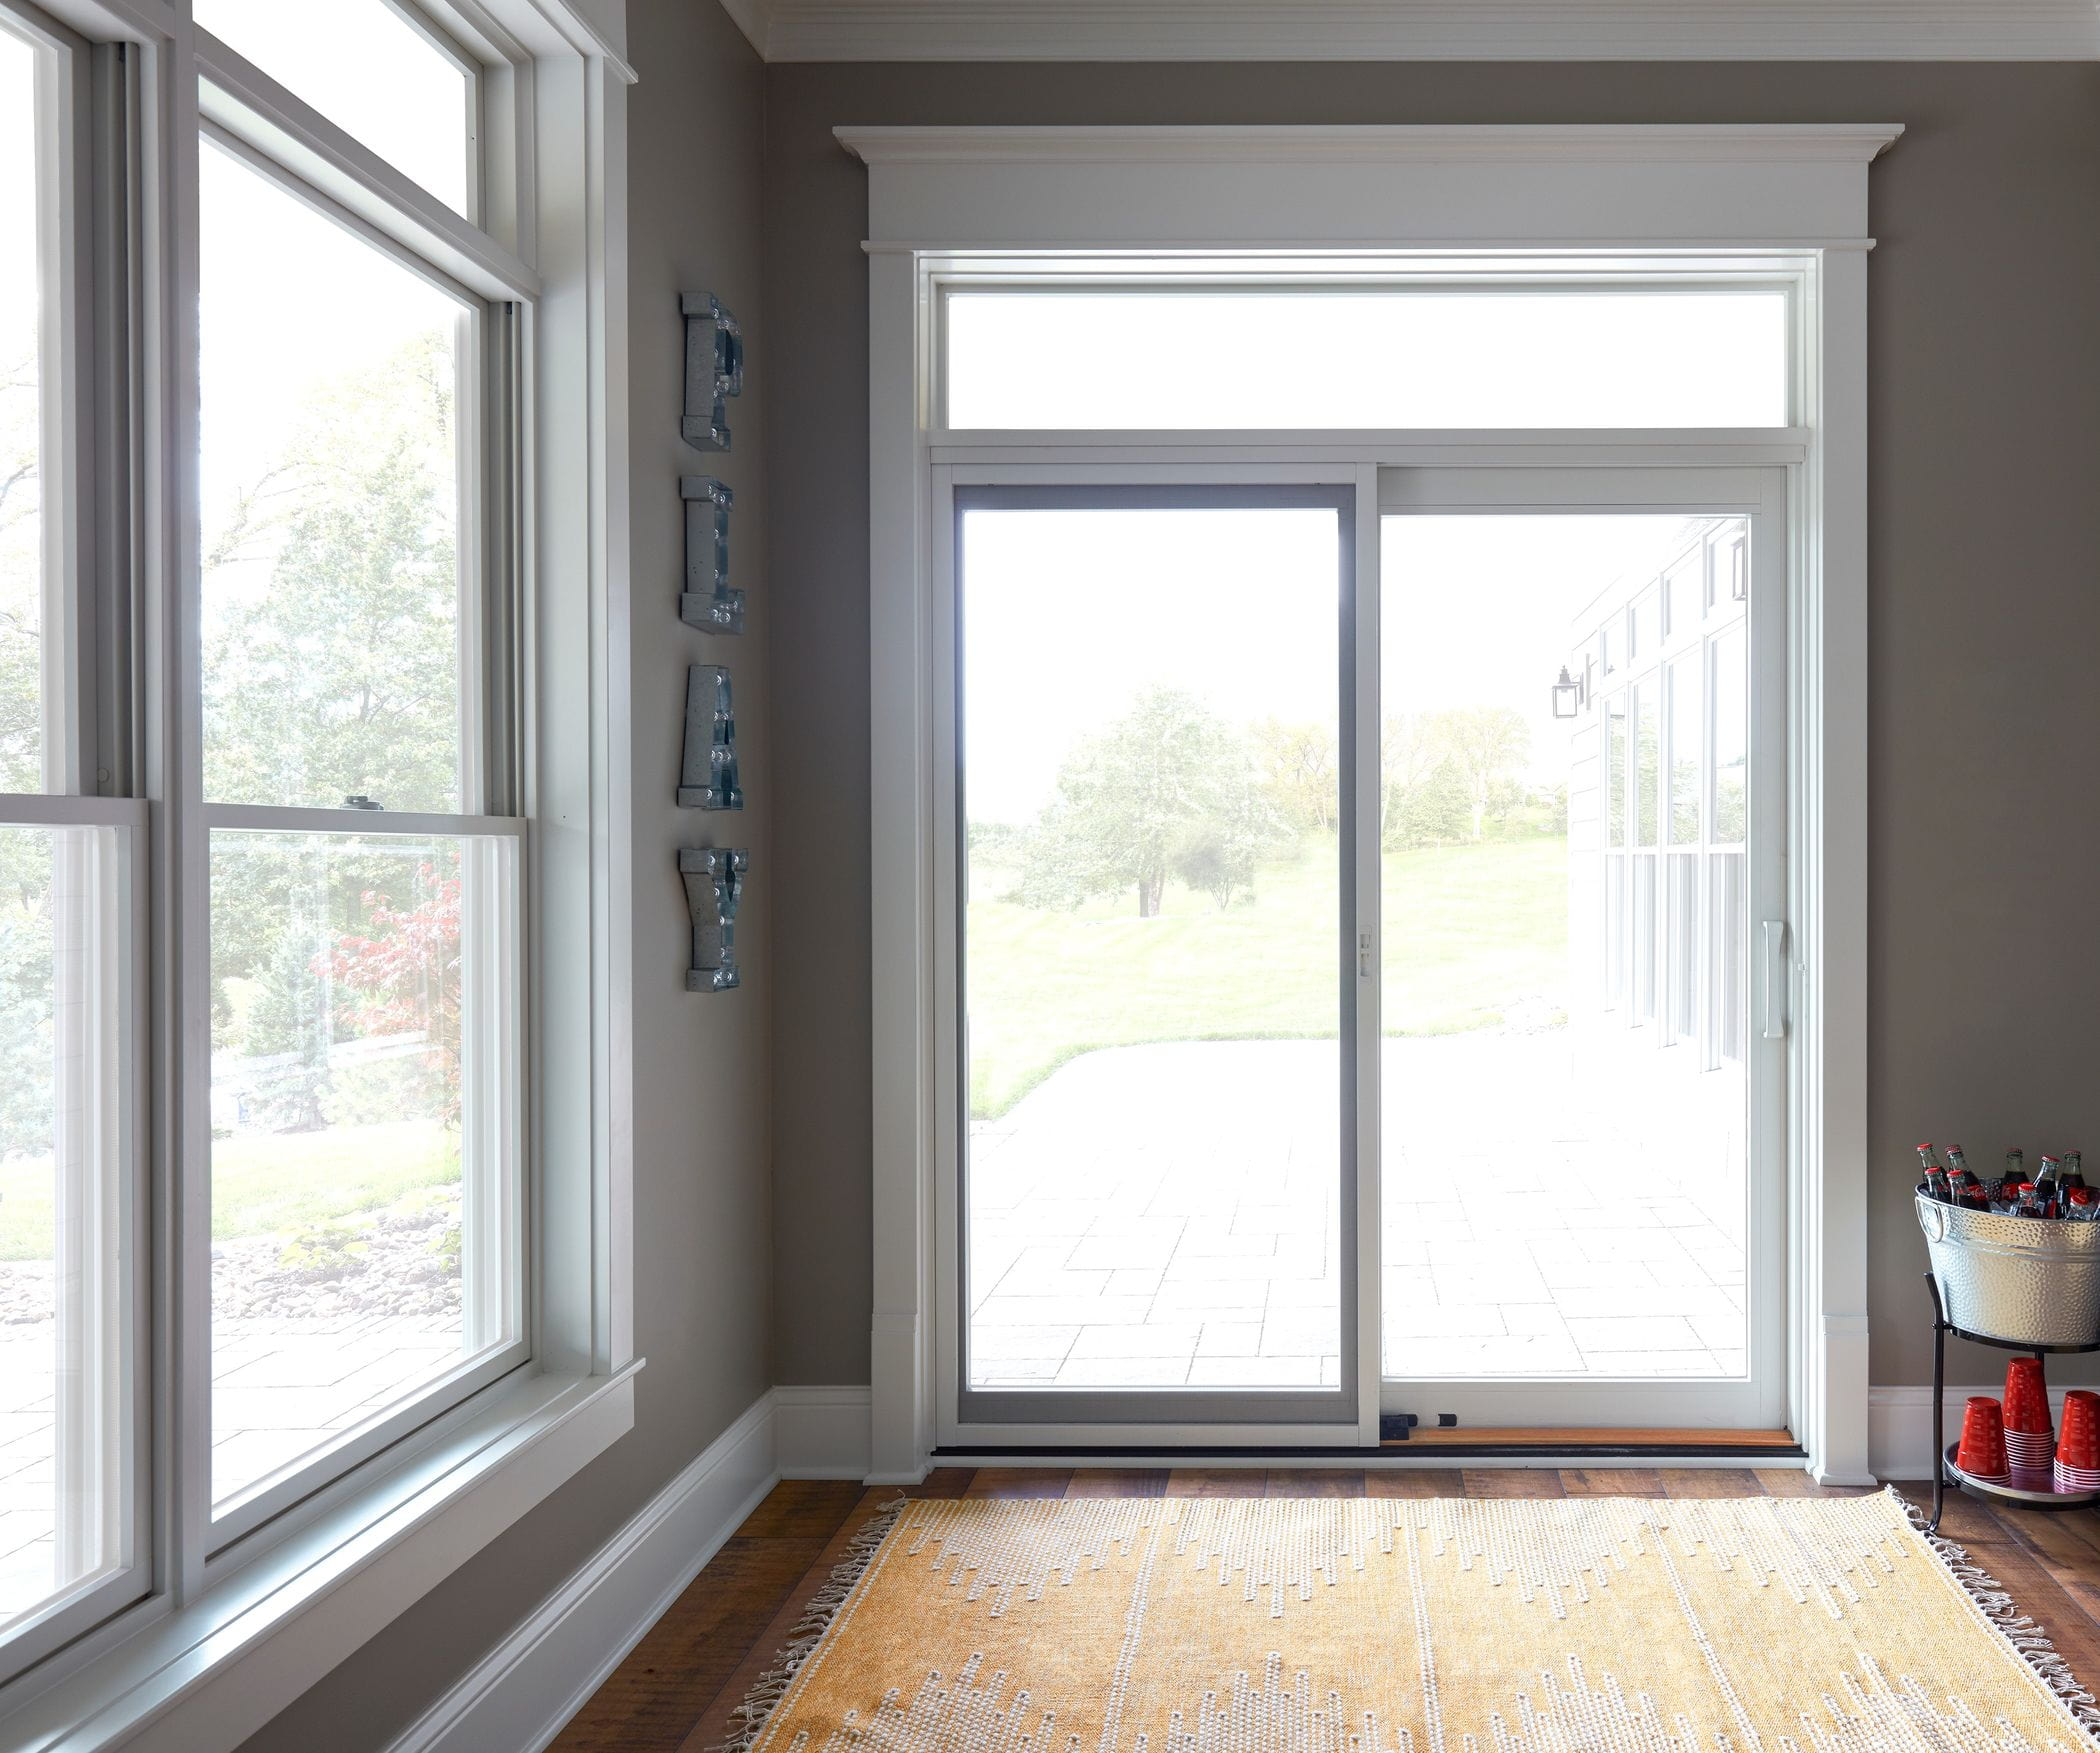 A white sliding glass patio door in a sunroom